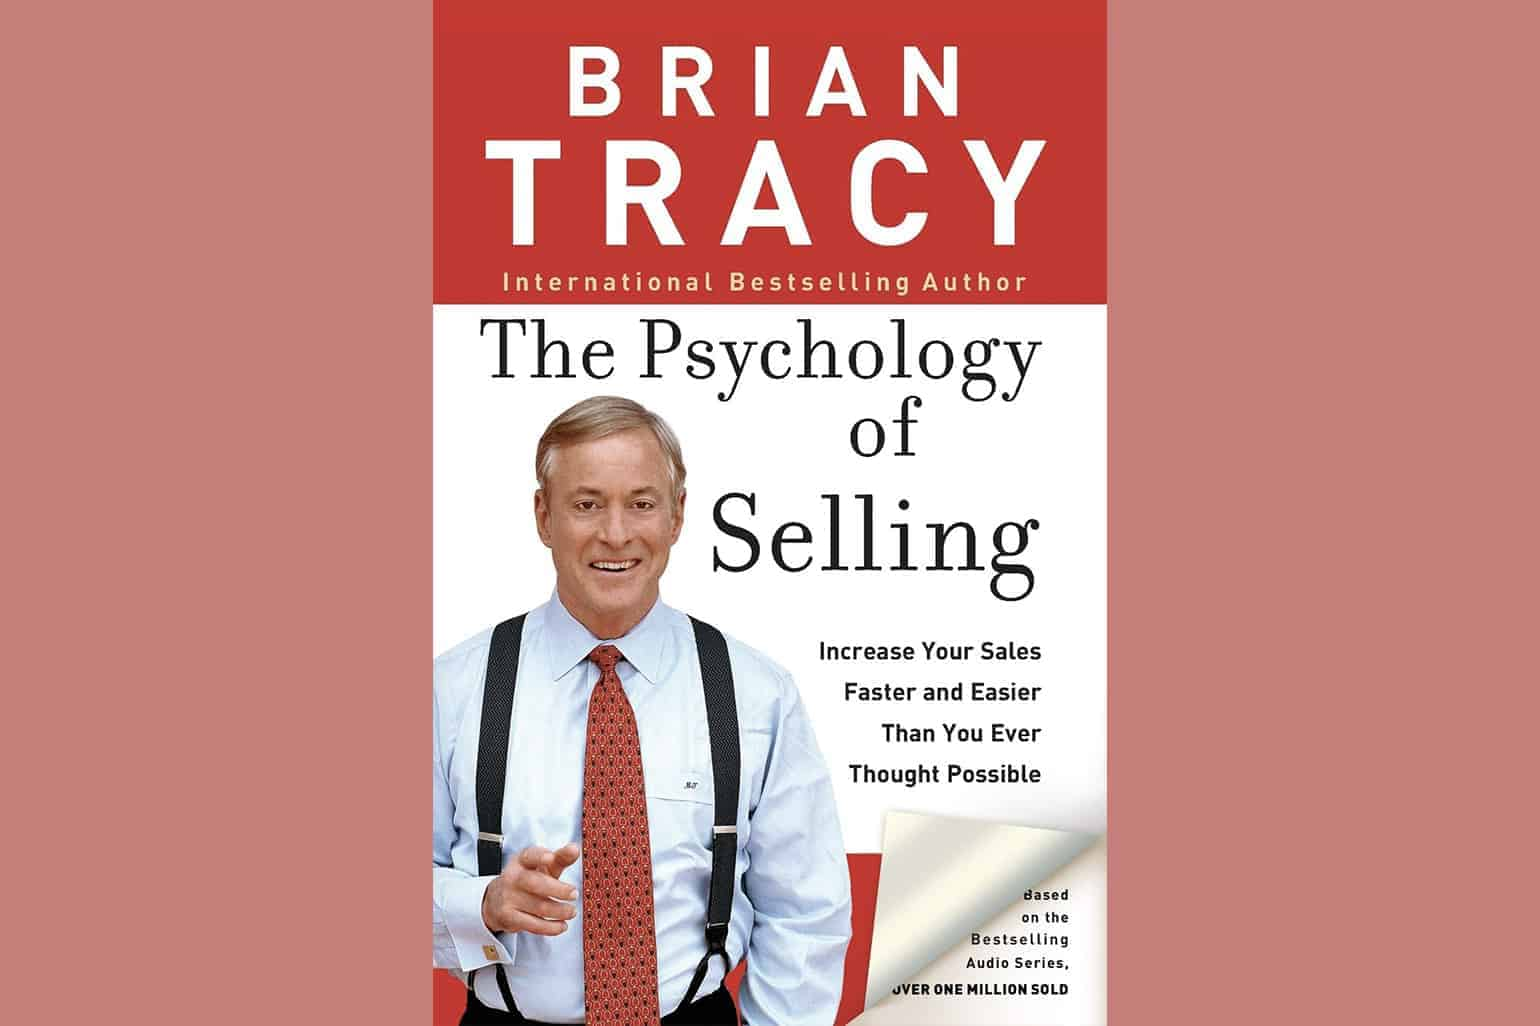 The Psychology Of Selling Increase Your Sales Faster And Easier Than You Ever Thought Possible By Brian Tracy